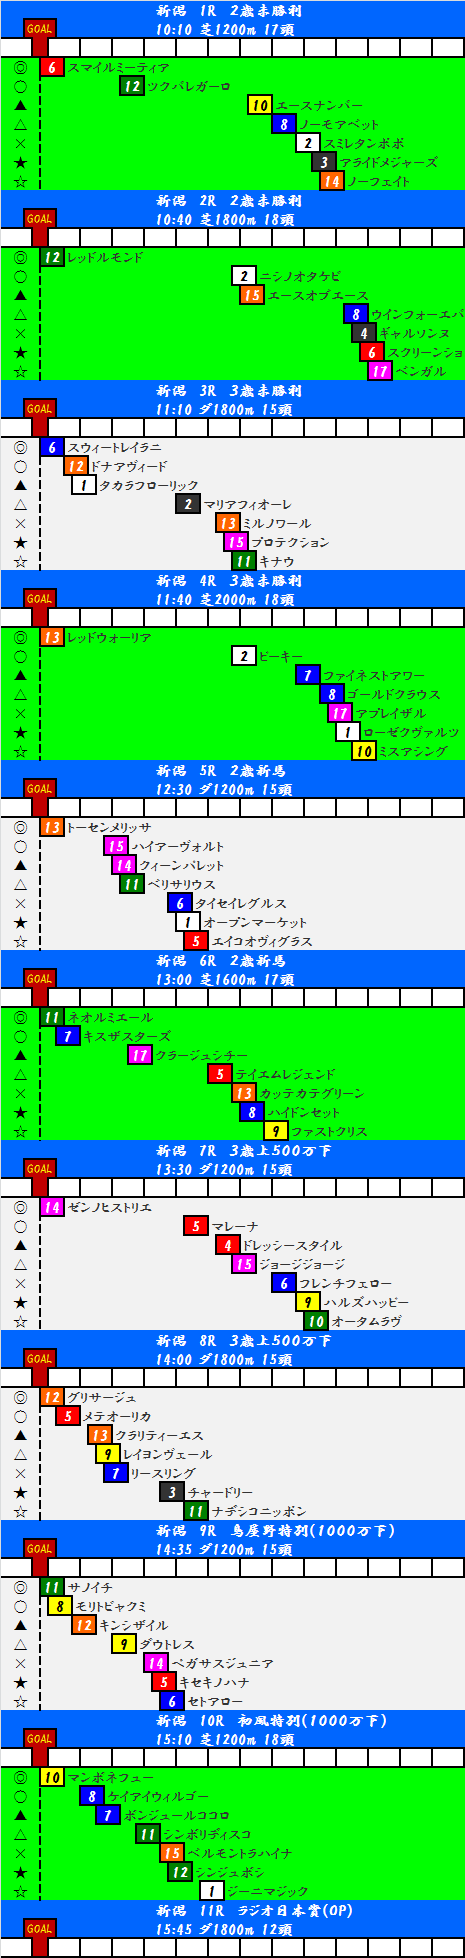 2014092001.png